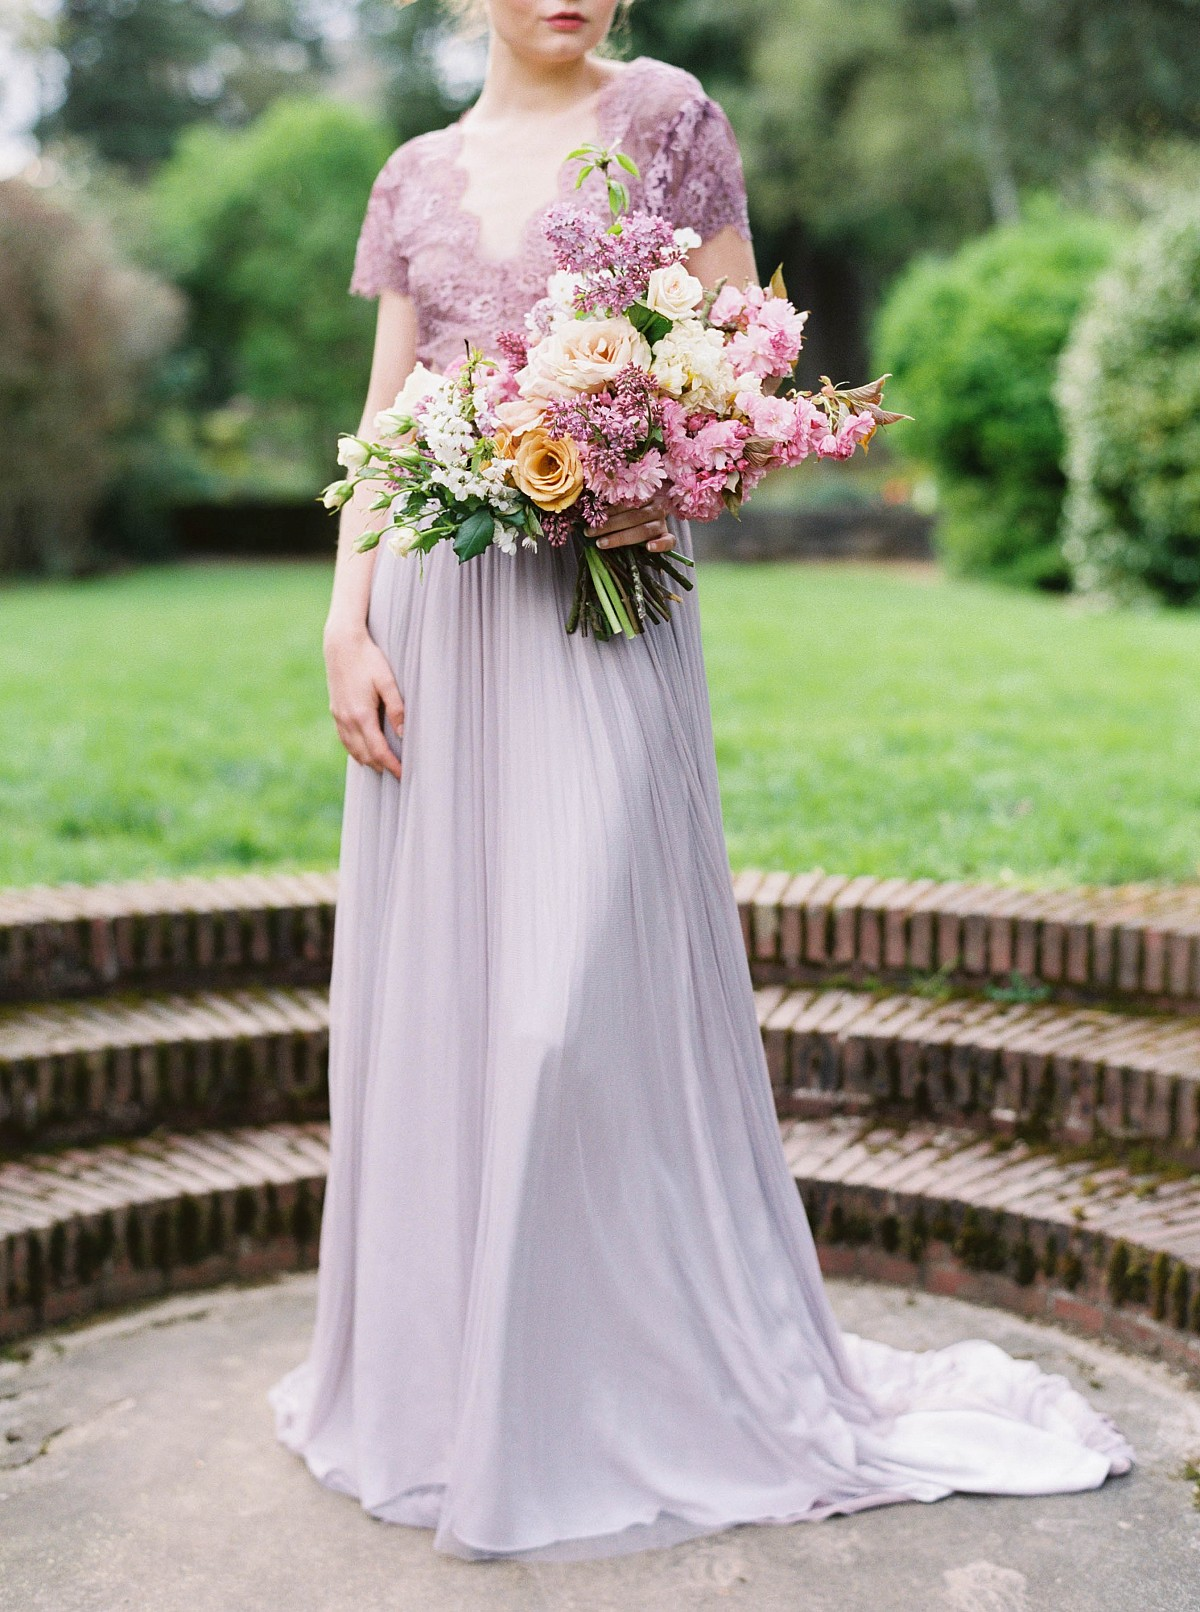 25 Best Colored Wedding Dresses for the Fine Art Bride